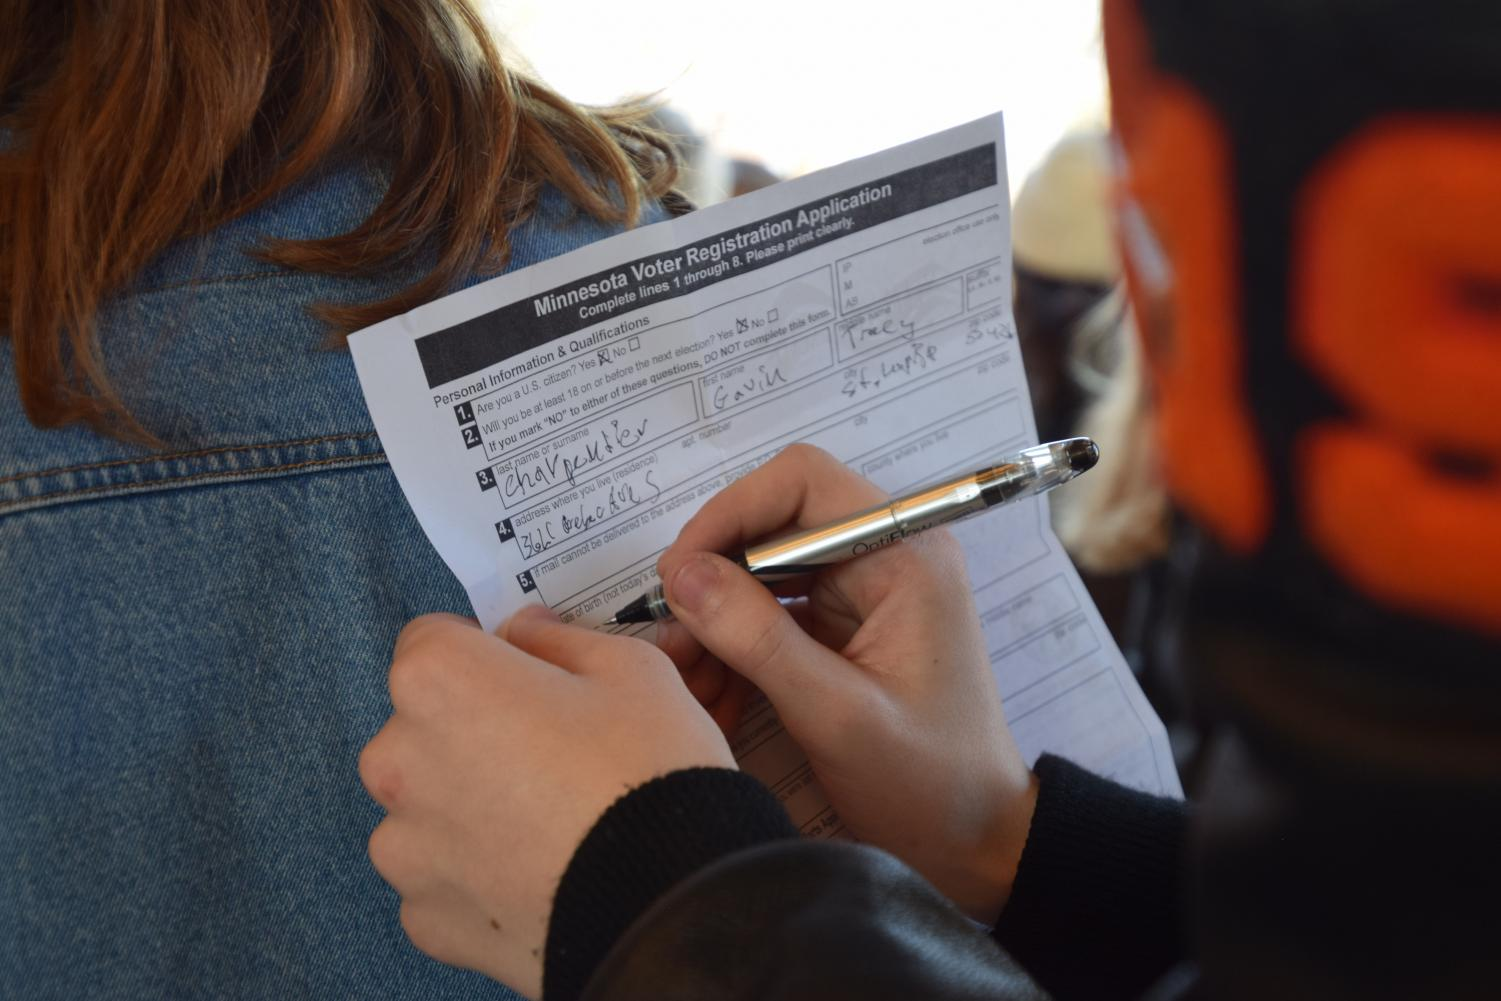 Senior Gavin Carpentier signs a voter registration application during the national high school walkout last year on March 14. ACT SLP is leading a voter registration assembly Sept. 26 to encourage eligible seniors to register to vote for the elections in November.